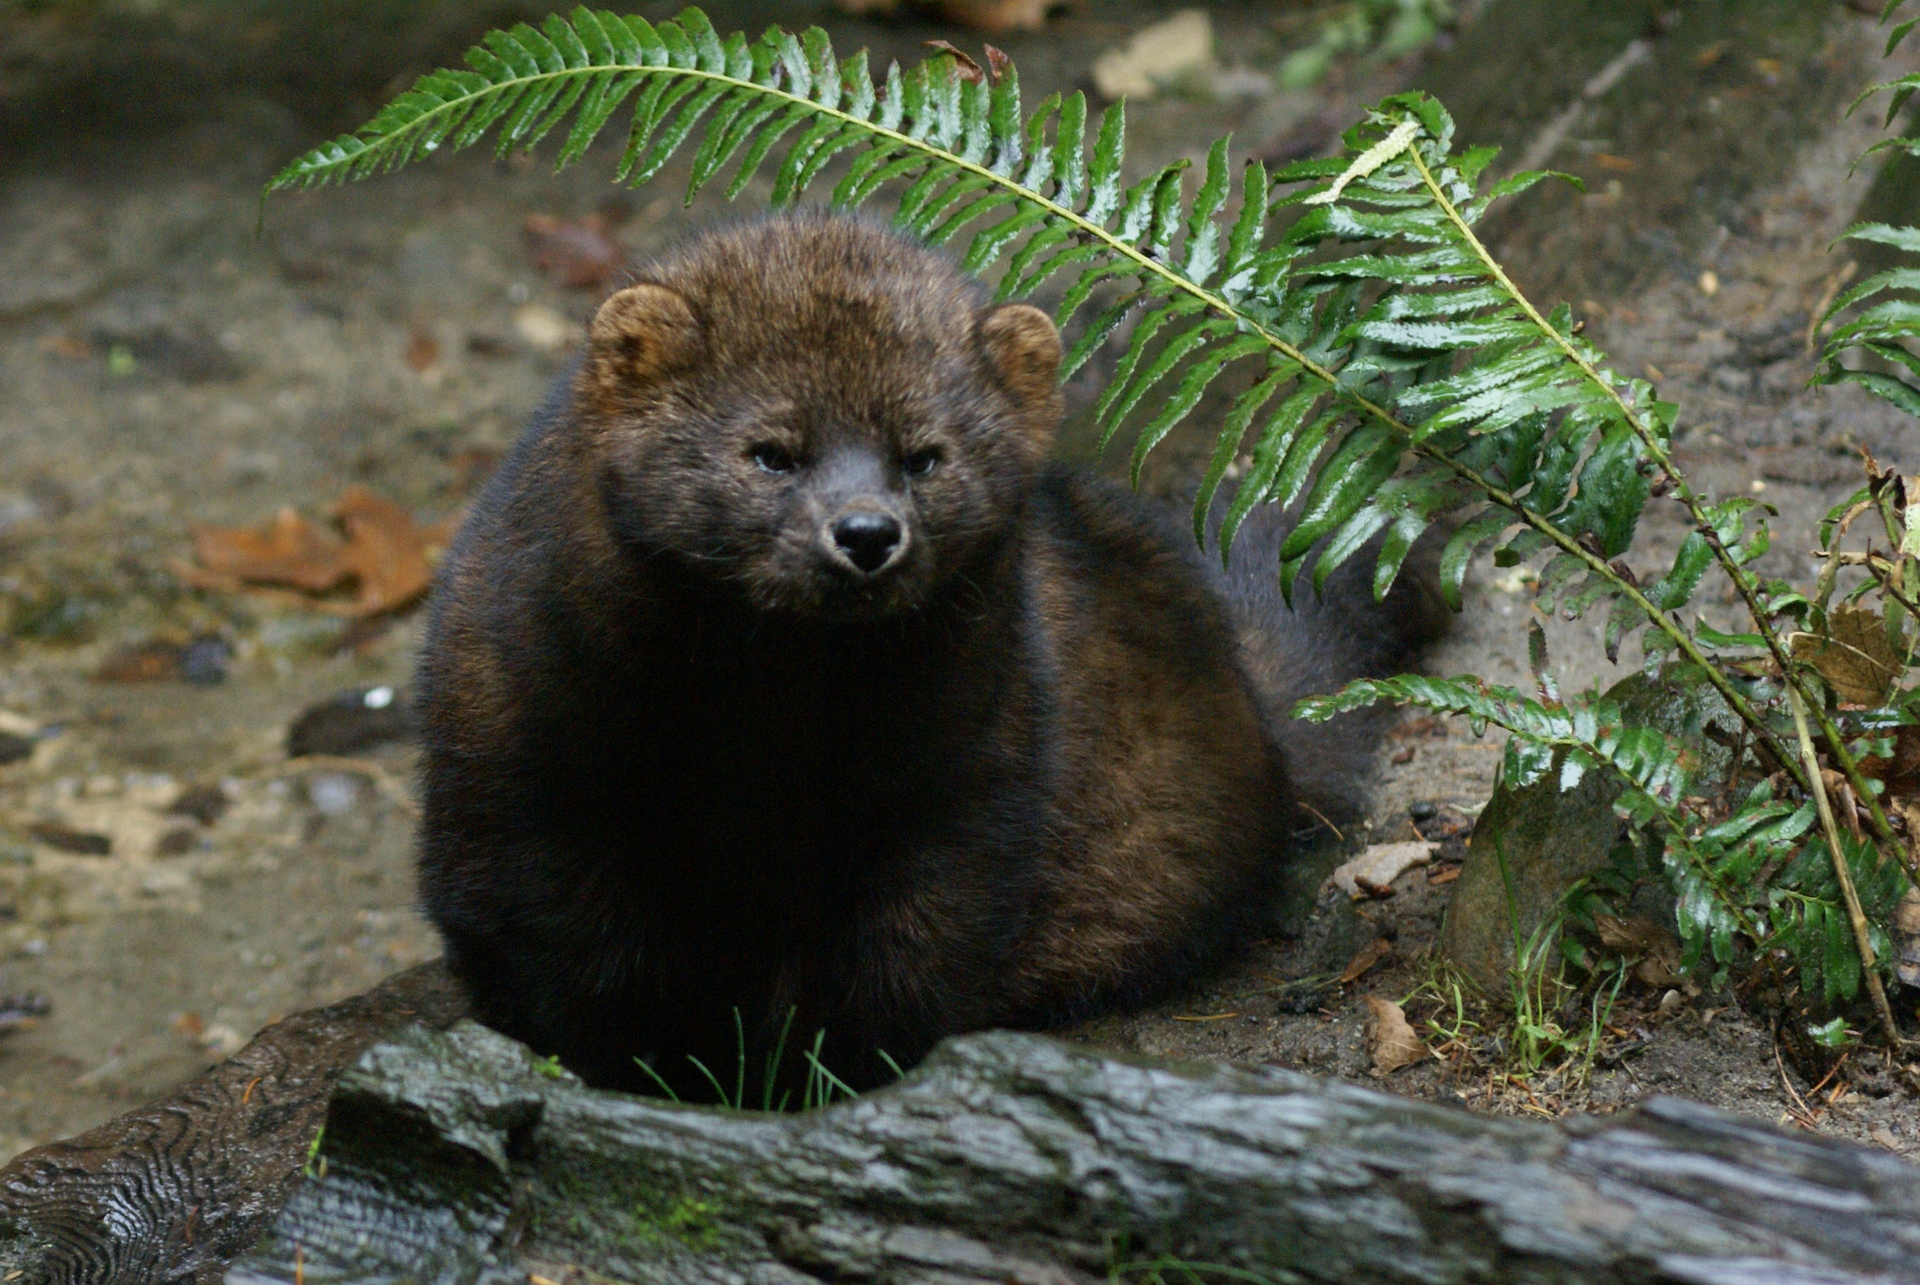 The Pacific fisher in the Sierra Nevada is on the endangered species list partly due to the loss of their habitat from wildfires.